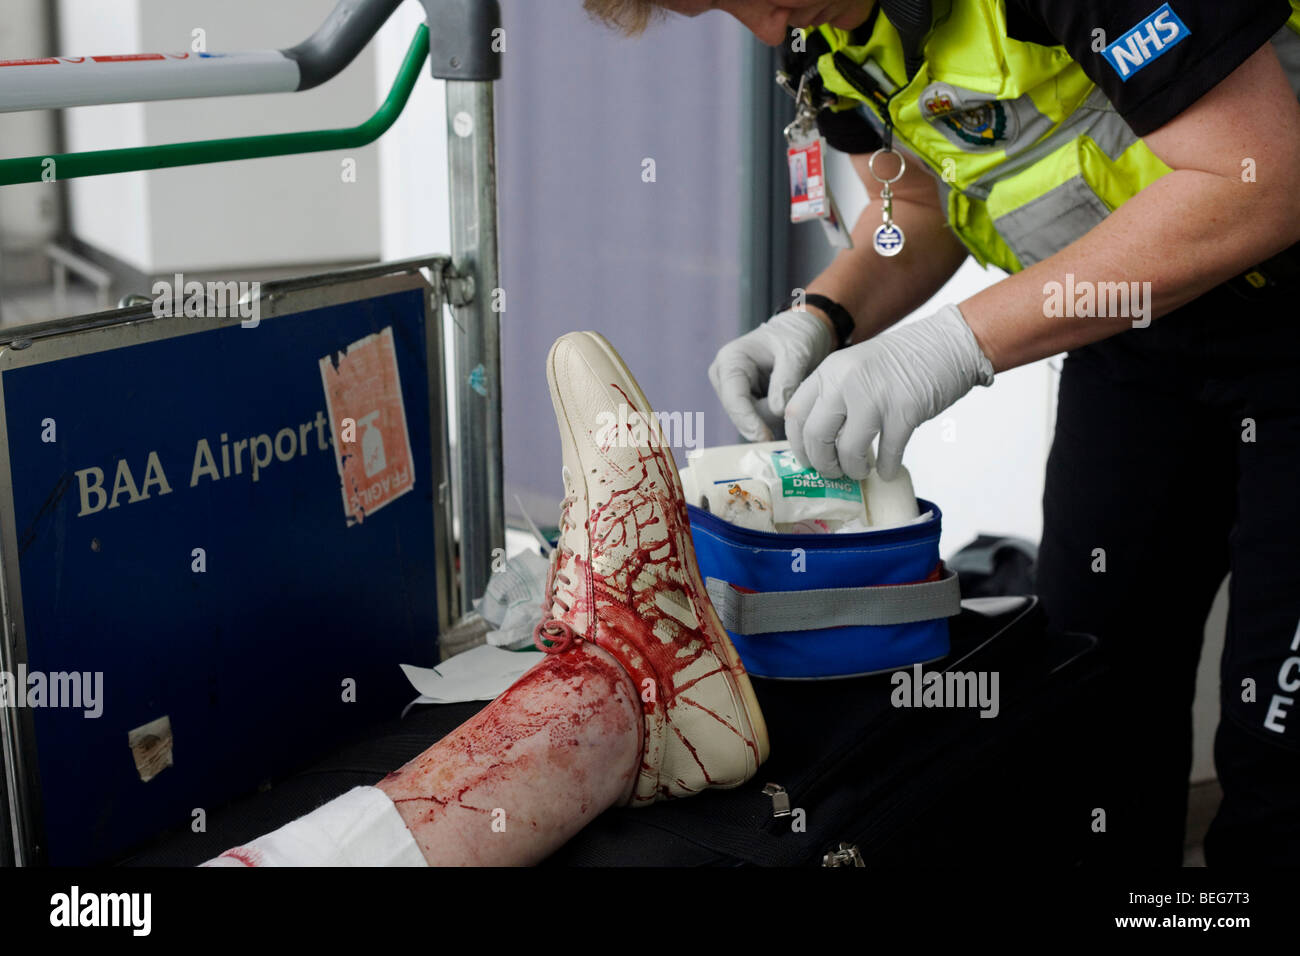 An NHS Paramedic Responder attends a lady passenger in Heathrow's terminal 3 who has tripped and badly gashed - Stock Image